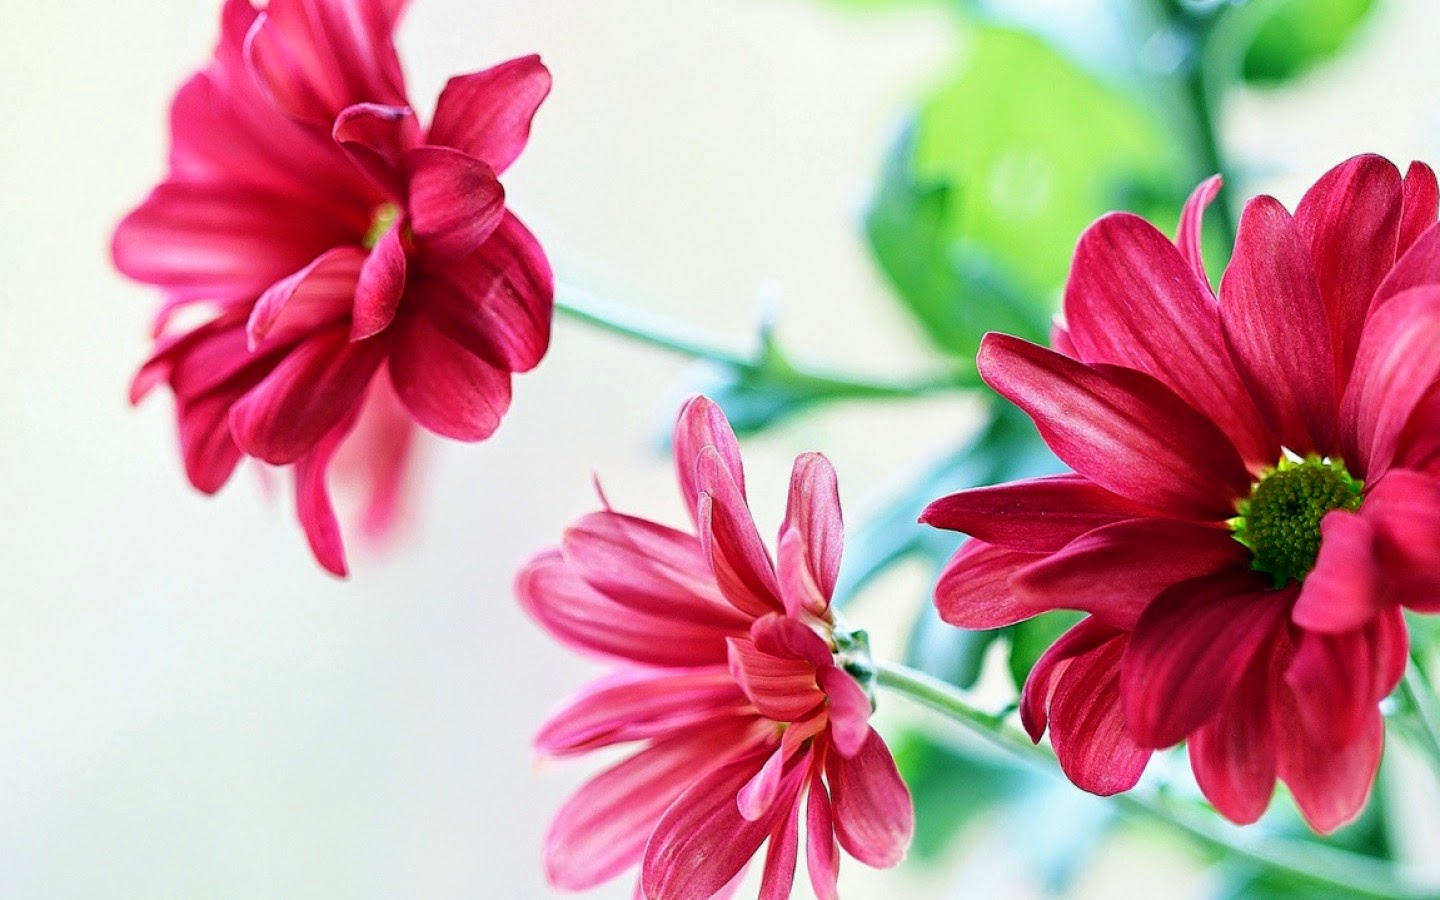 Beautiful Flower Wallpapers For Facebook|http ...